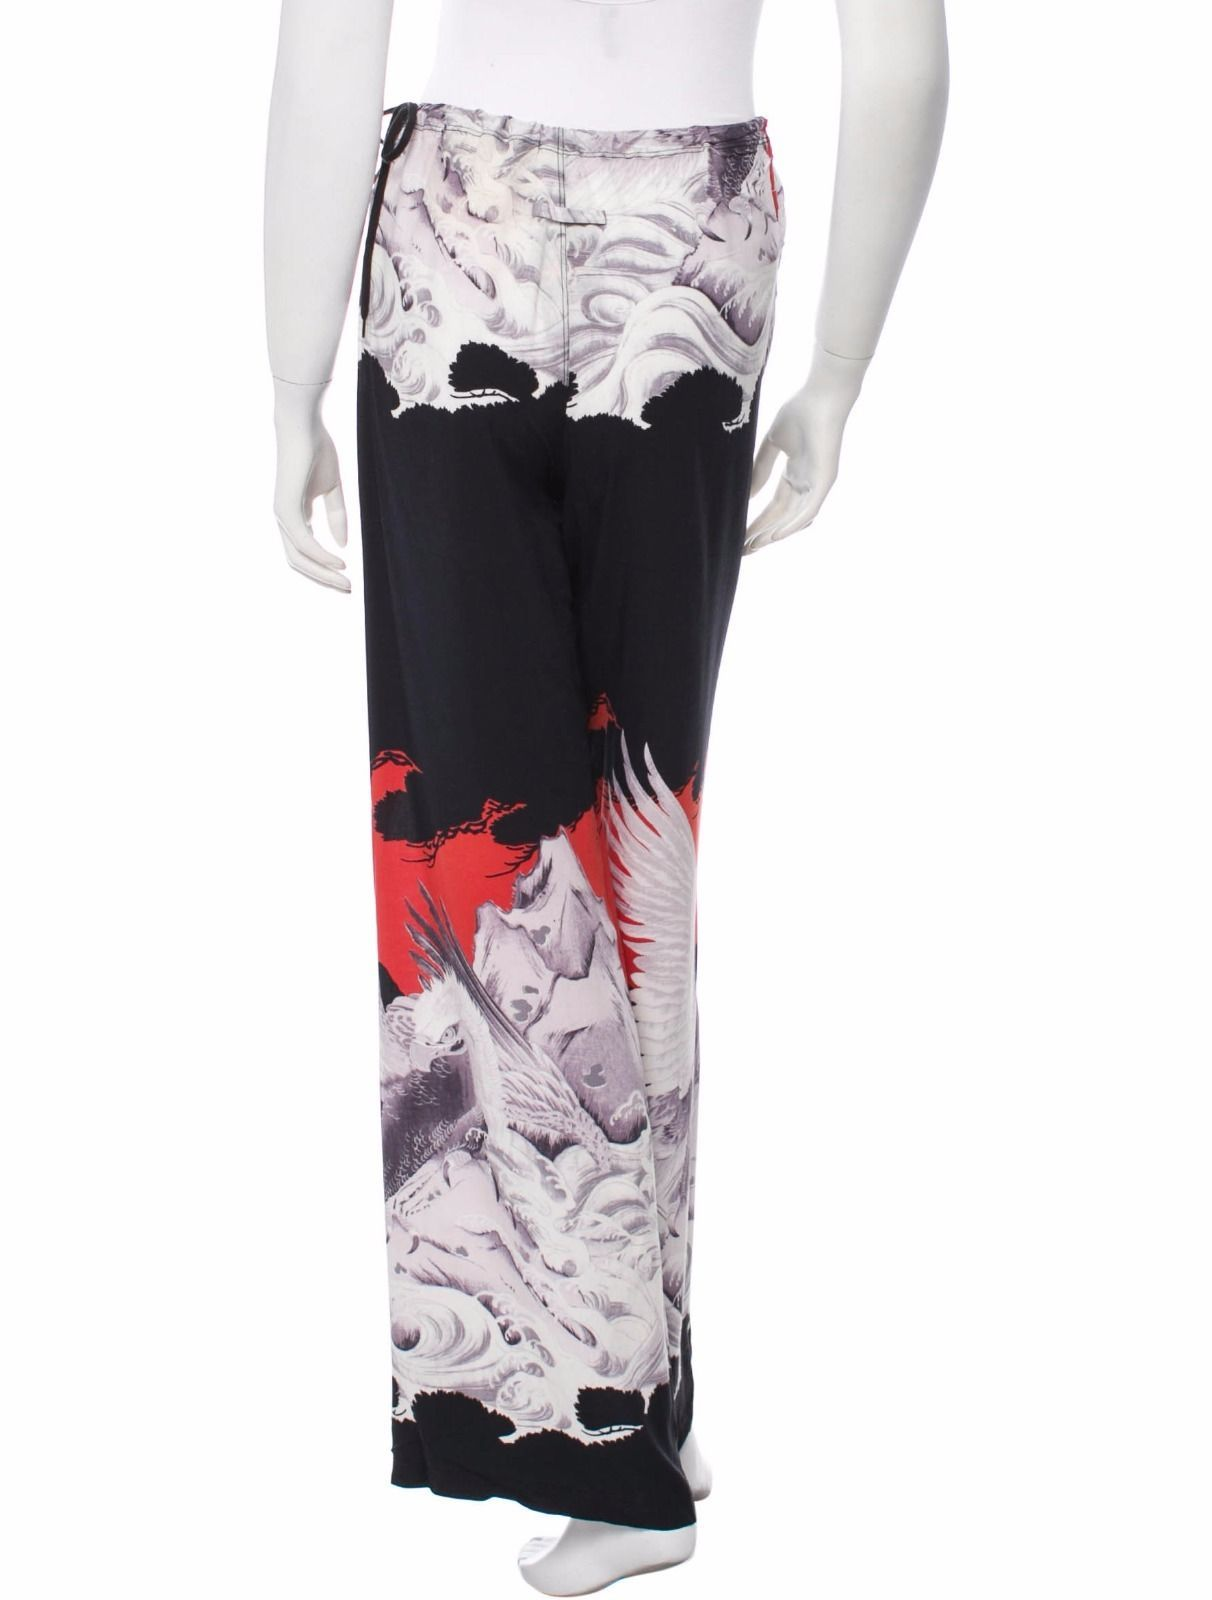 CRAZY COOL NWT JEAN PAUL GAULTIER FLARED DRAWSTRING PANTS